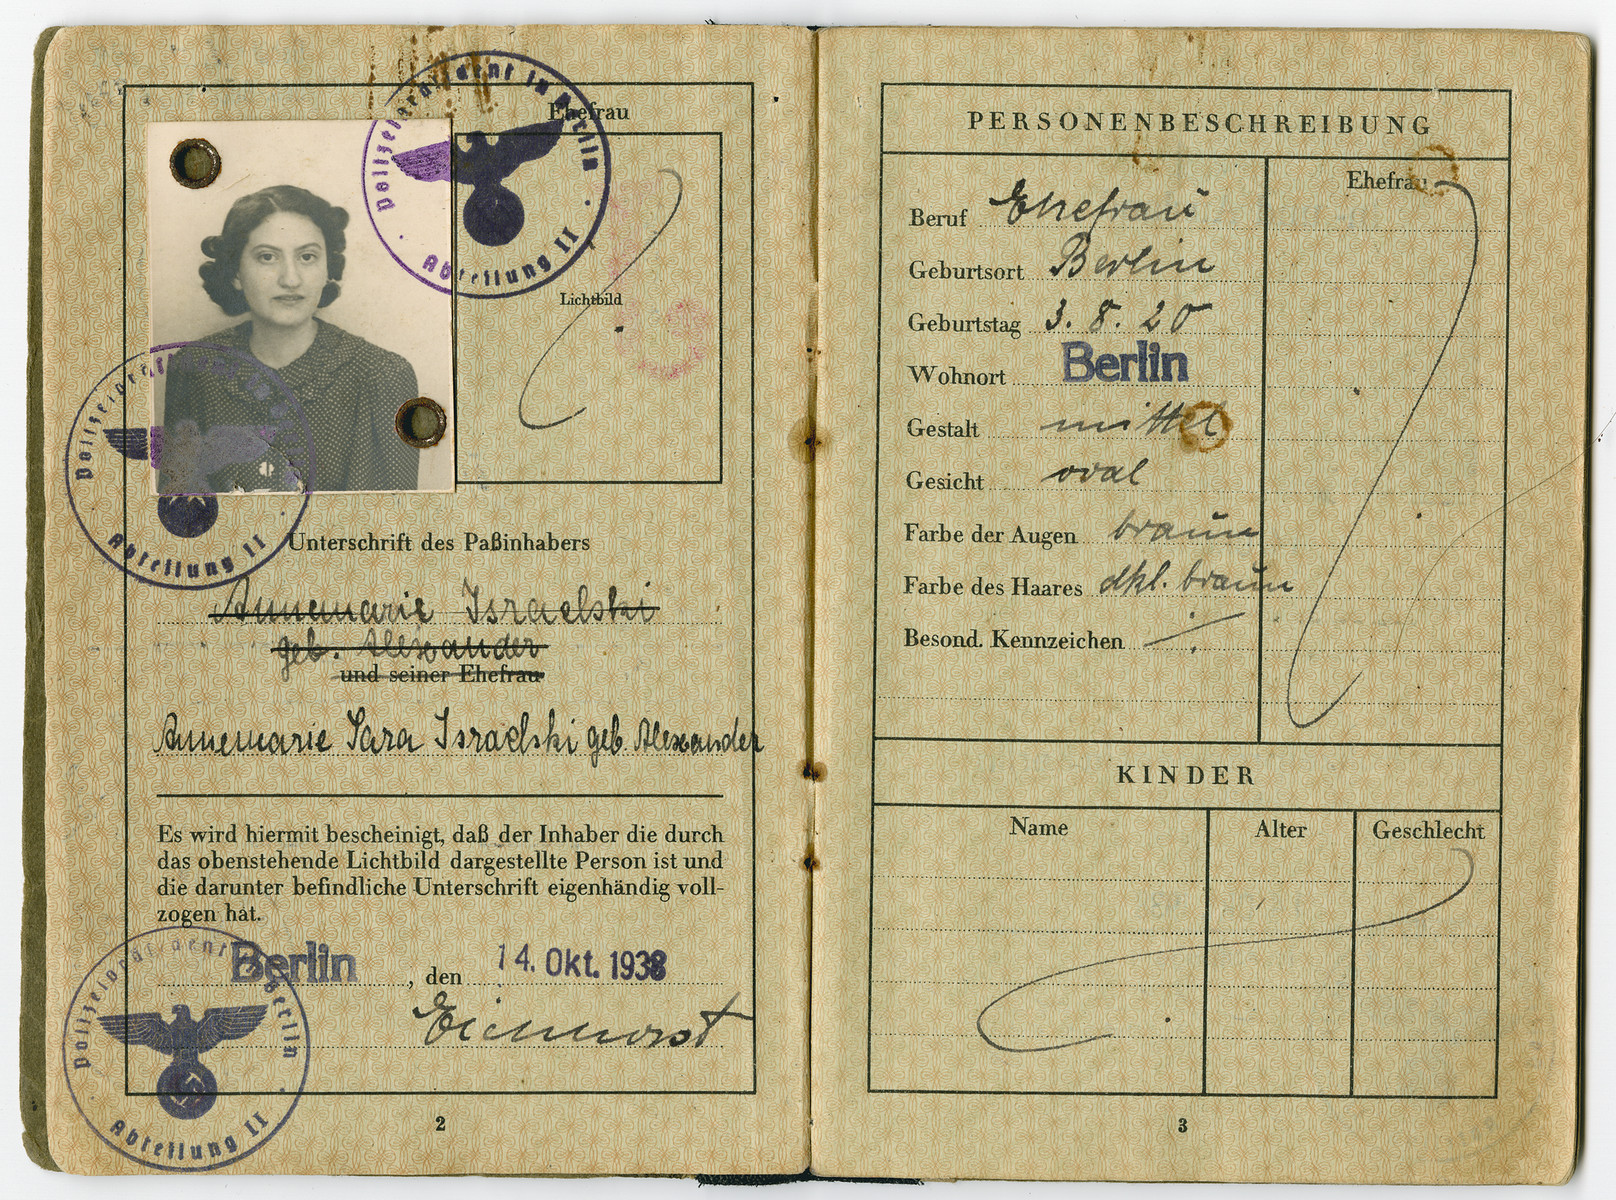 Annemarie's Israelski 's German passport. showing her Sara.  The Jews were not allowed to have Aryan names on their passports, so all of the boys were named Israel and the girls were Sara.